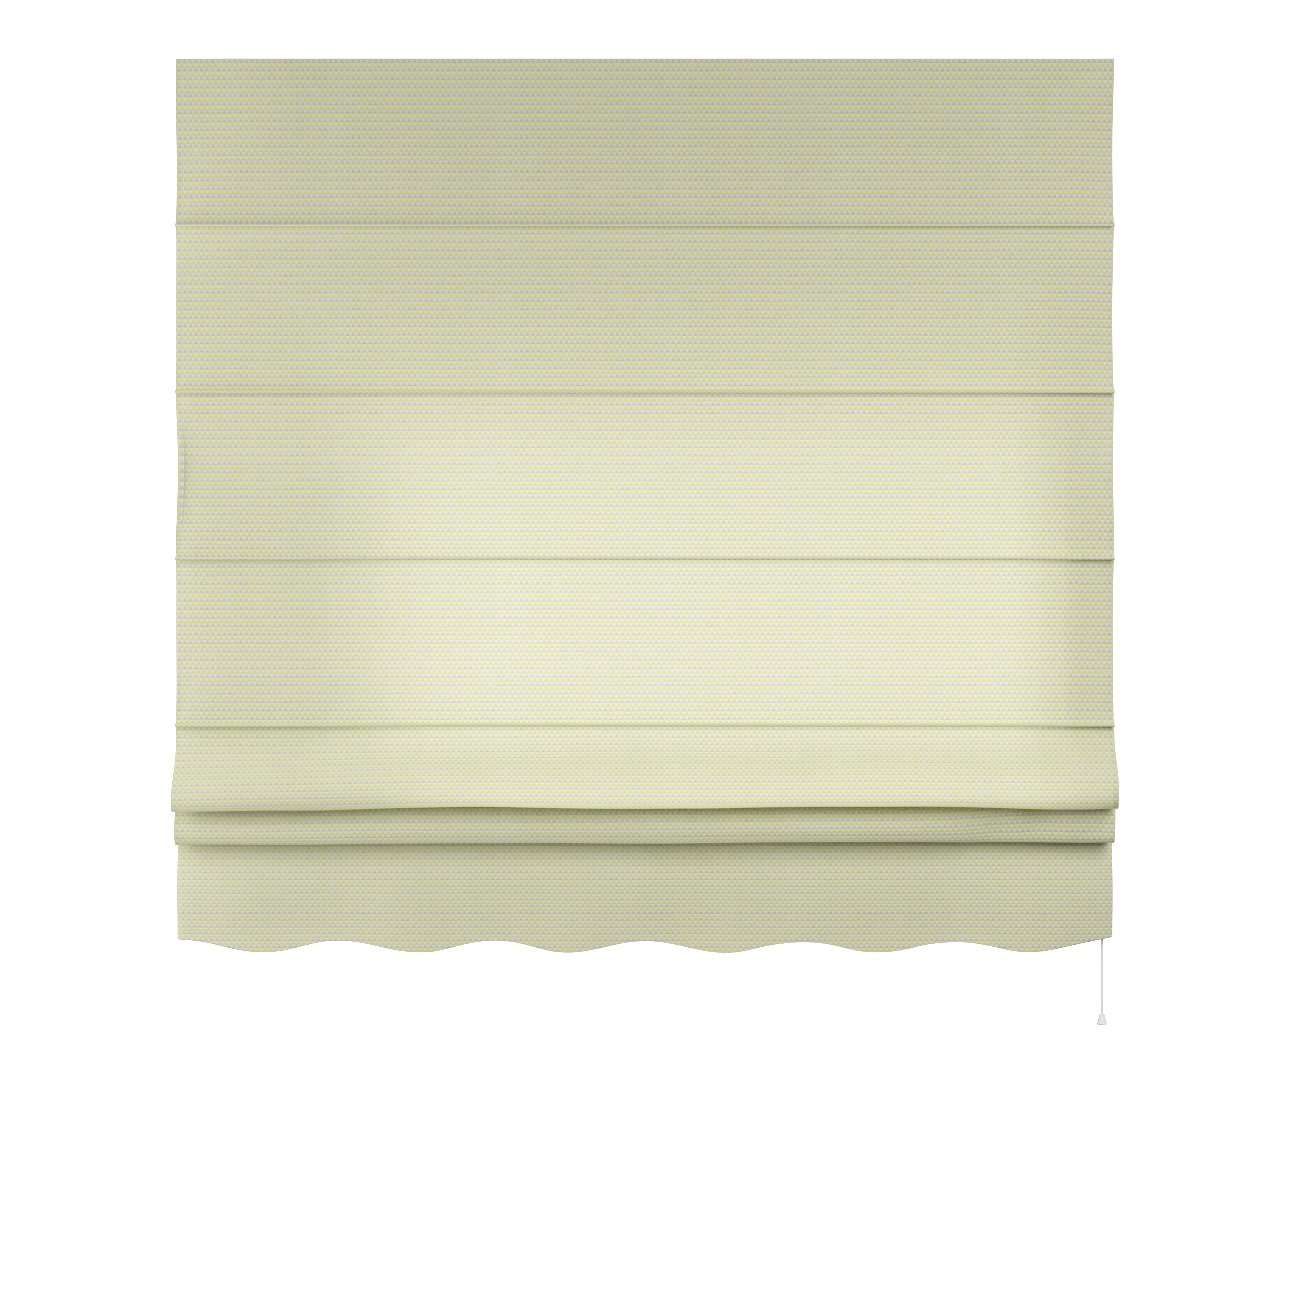 Florence roman blind  80 x 170 cm (31.5 x 67 inch) in collection Rustica, fabric: 140-34